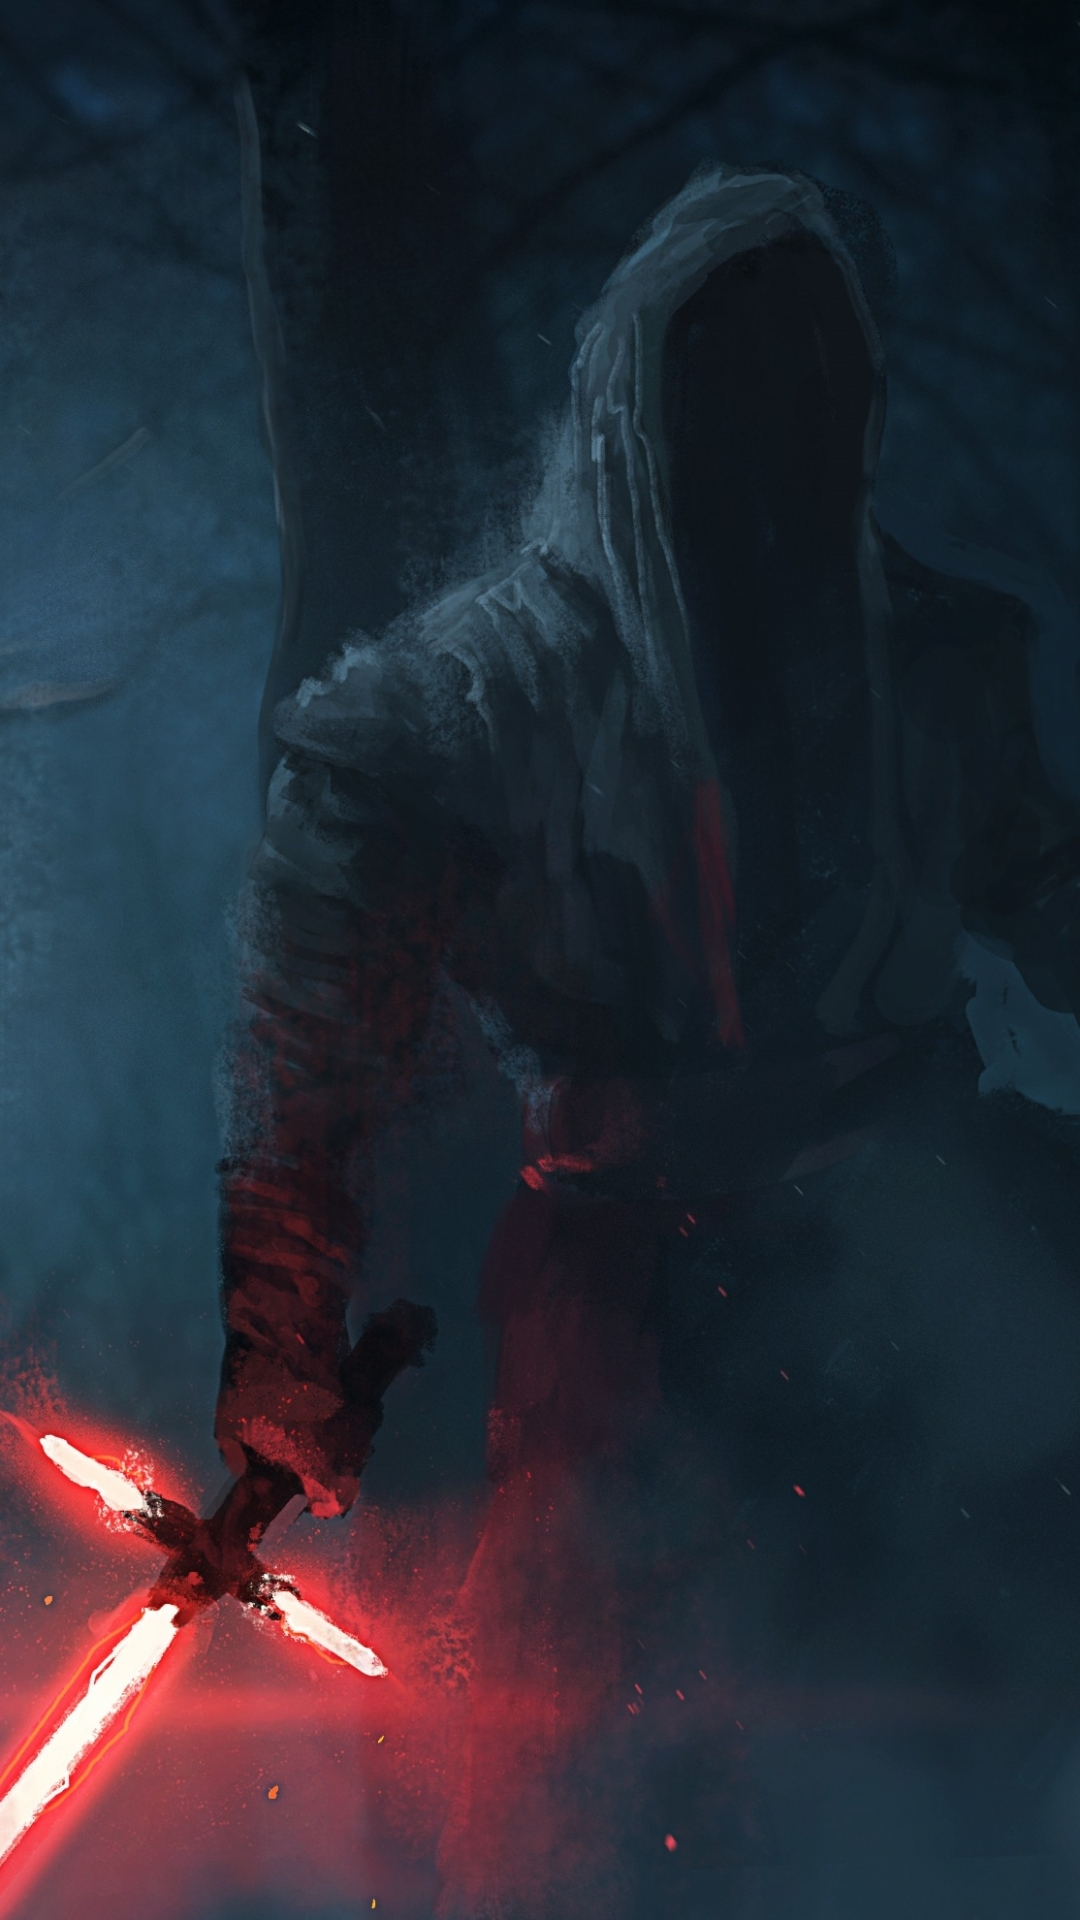 Star Wars The Force Awakens Wallpaper Kylo Ren painting